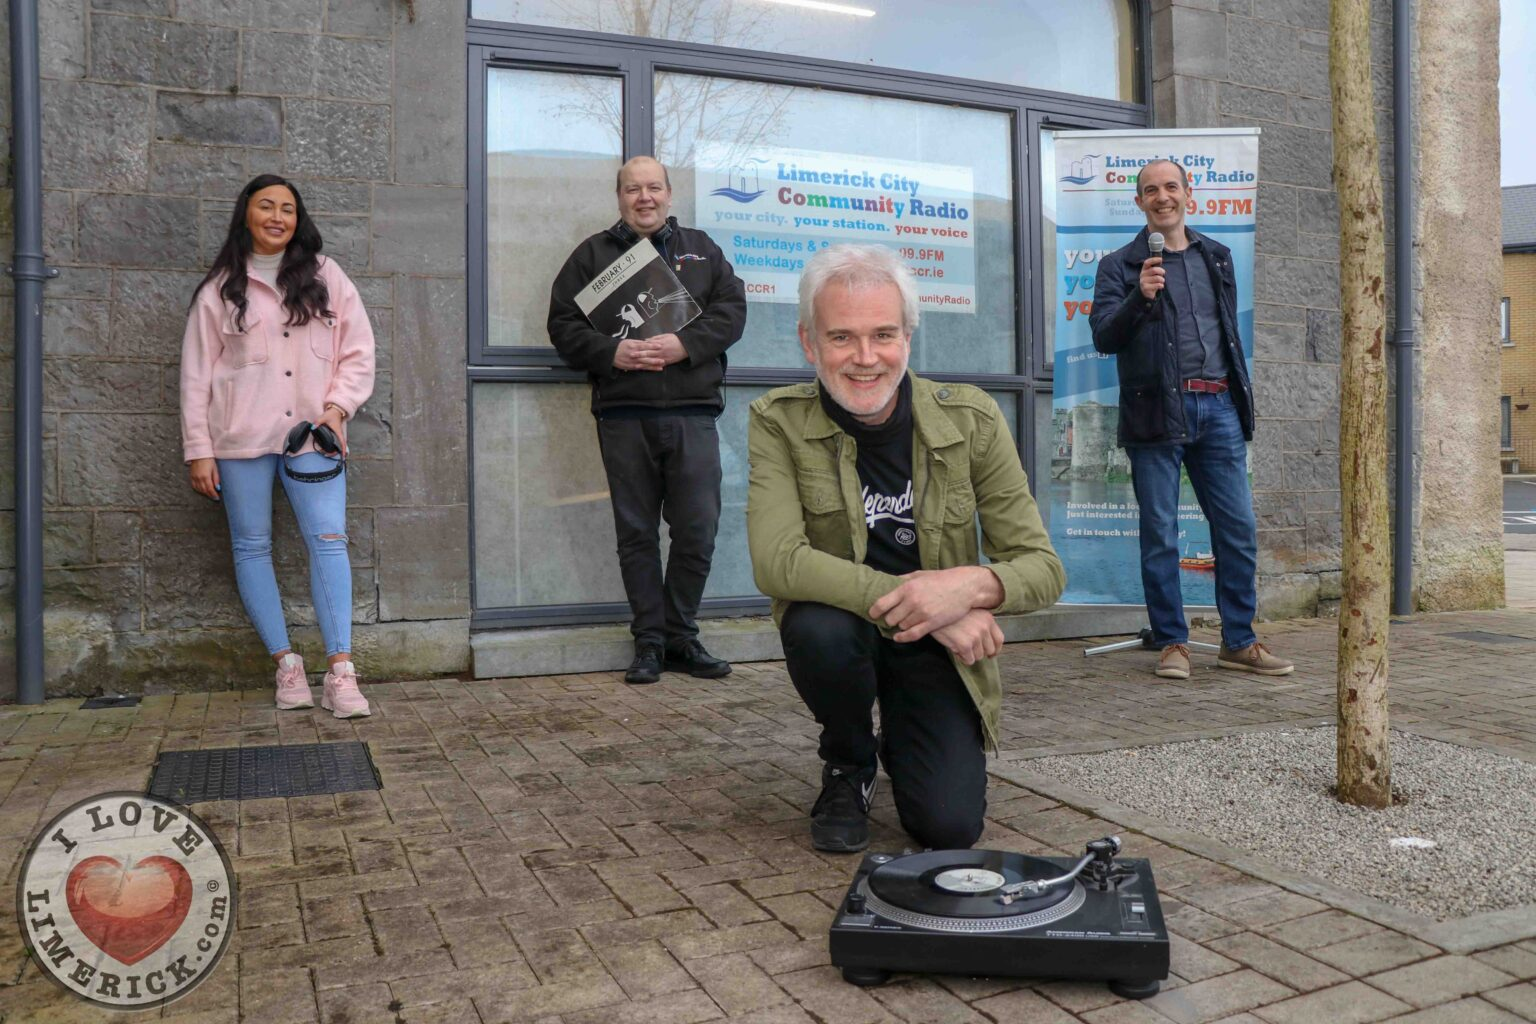 10 Questions with DJ Eric Fitzgerald - Pictured at Limerick City Community Radio on Edward Street are presenter Breda Ryan Richard Smith, Chairperson LCCR and presenter Seanie Ryan (back) and presenter Eric Fitzgerald (front). Picture: Dylan Frawley/ilovelimerick